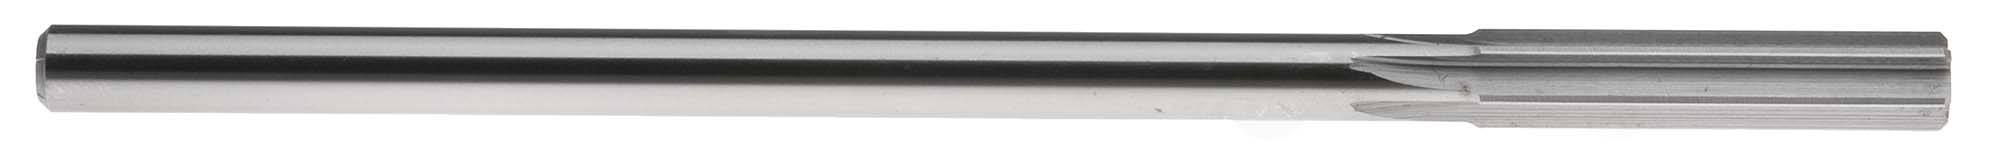 "17/6""4 Straight Shank Chucking Reamer, Straight Flute, High Speed Steel"